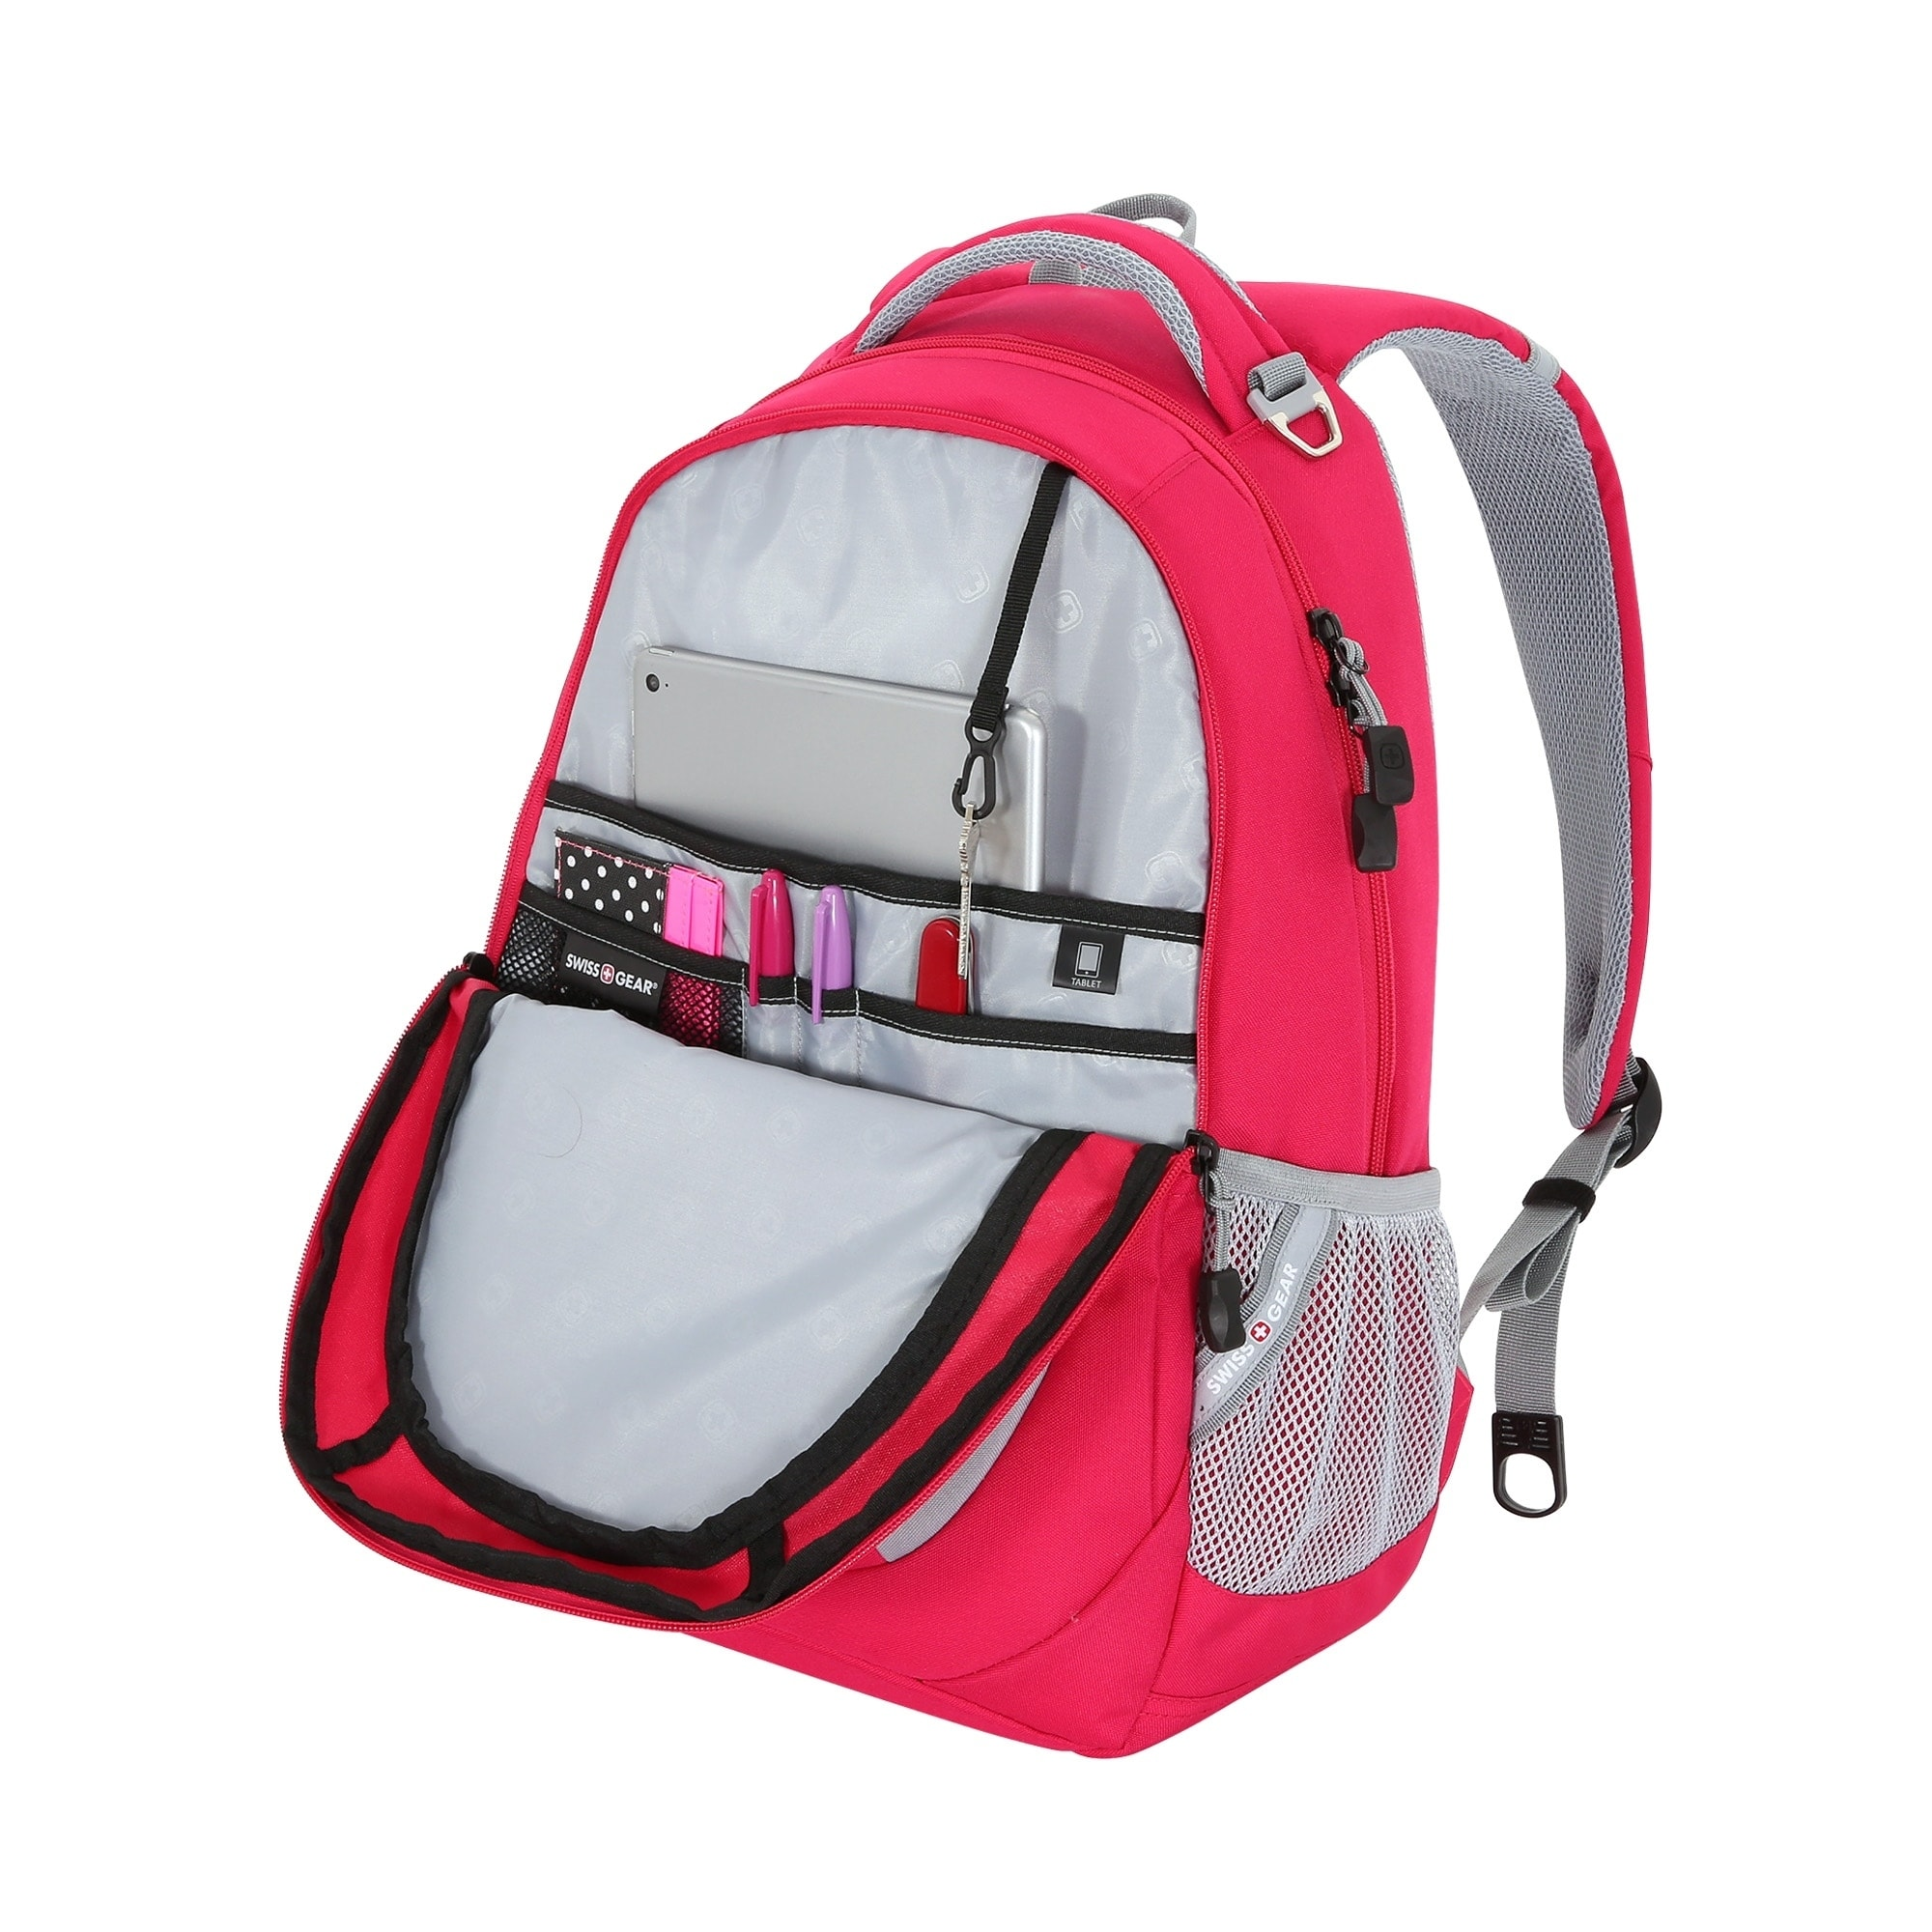 dbd1f77792 Shop SwissGear Cranberry - Urban Heather 18 inch Laptop Backpack - Free  Shipping Today - McAoo - 20248274